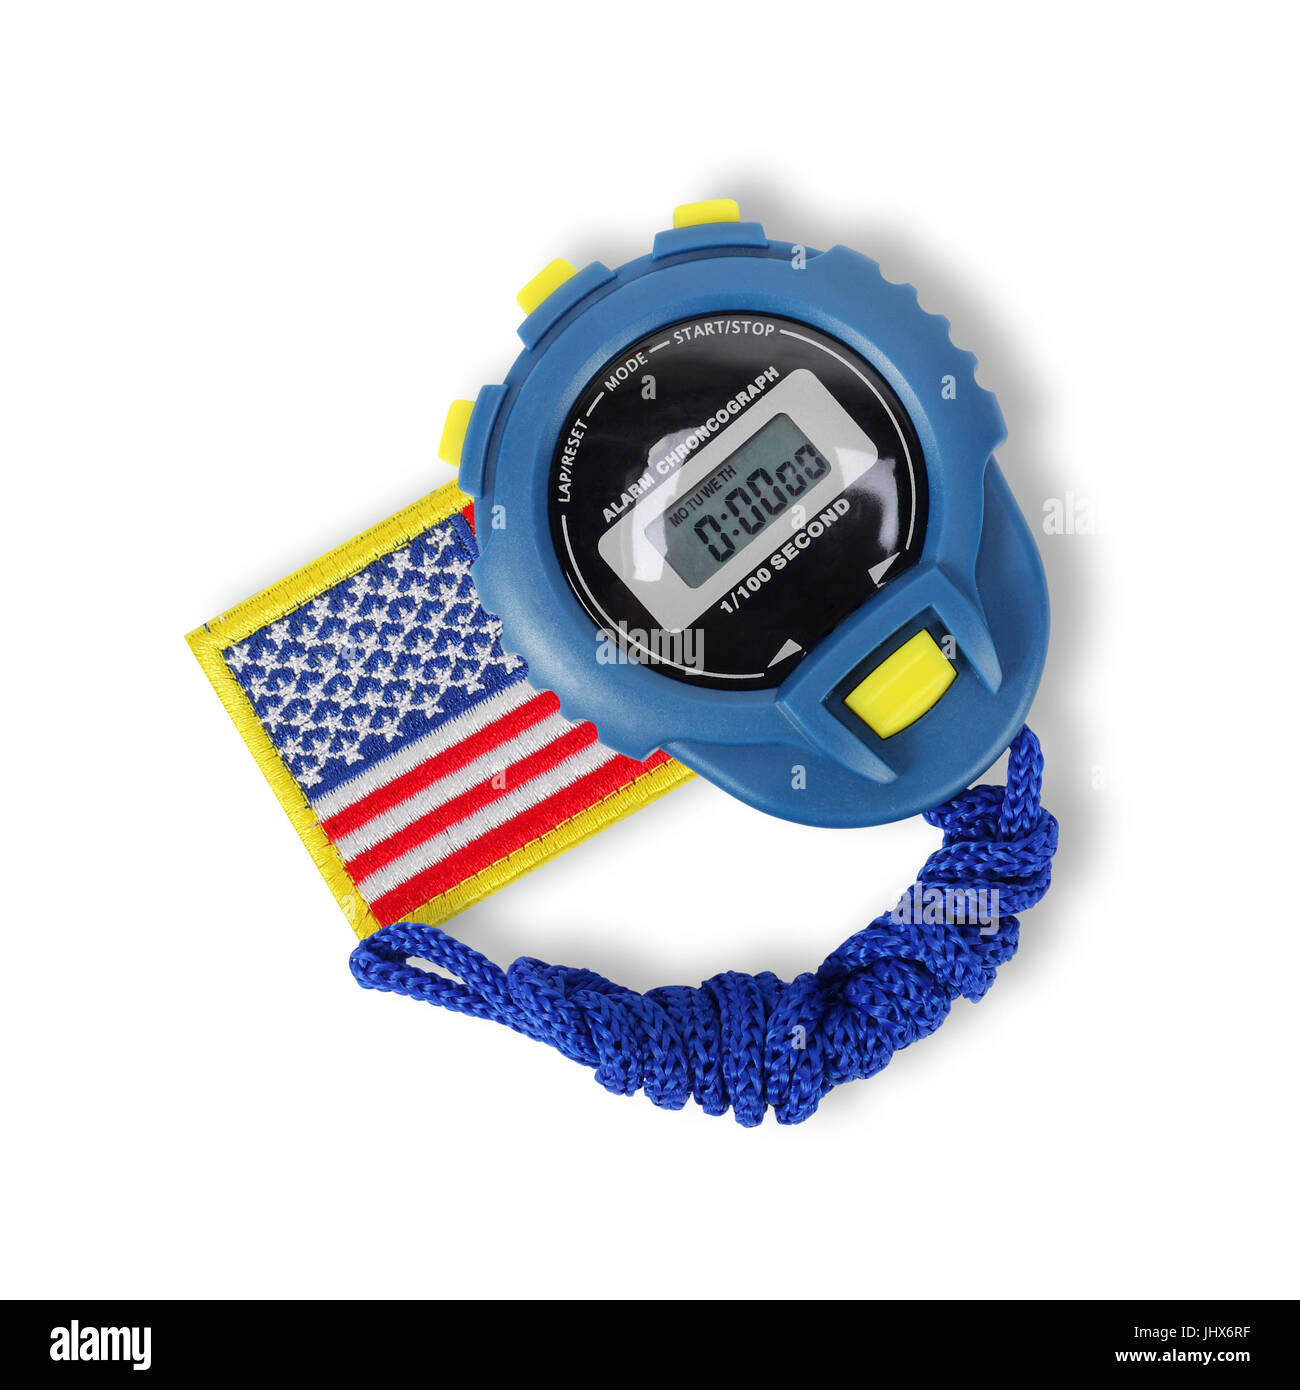 Sports equipment - Blue Digital electronic Stopwatch and usa flag on a white background - Stock Image